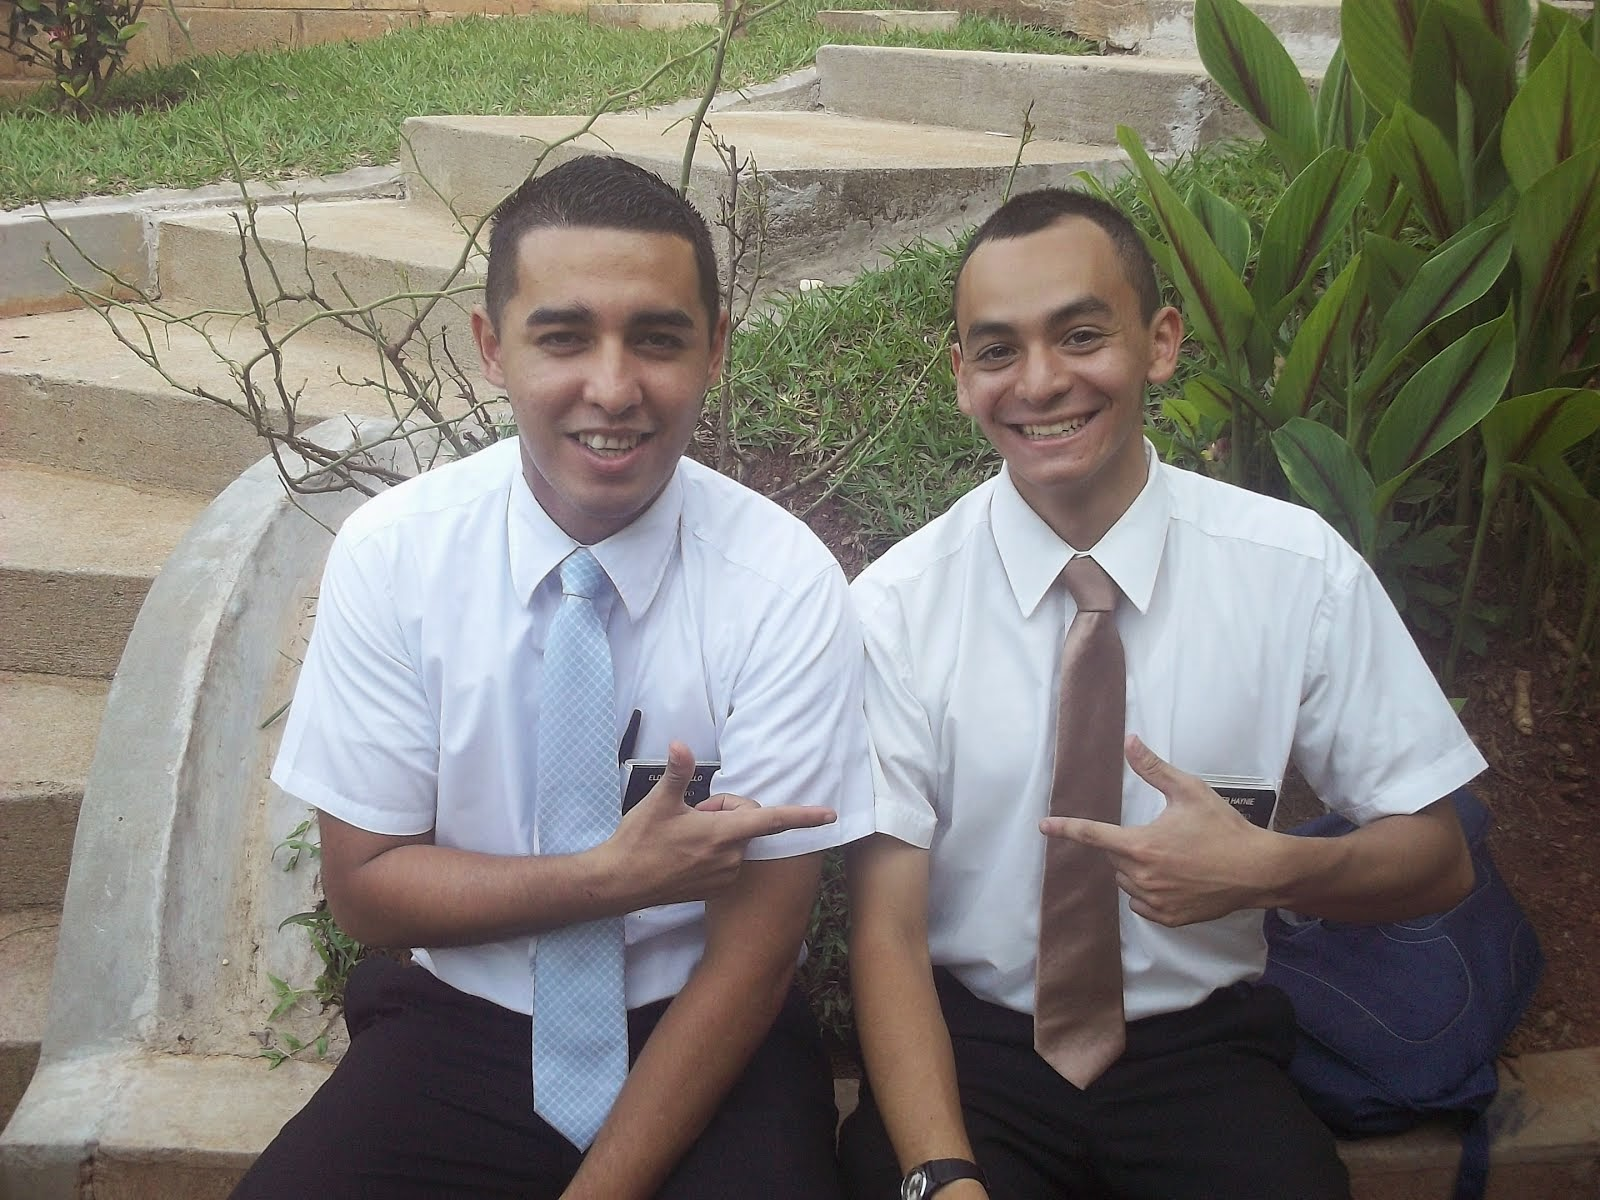 Elder Haynie and a New companion